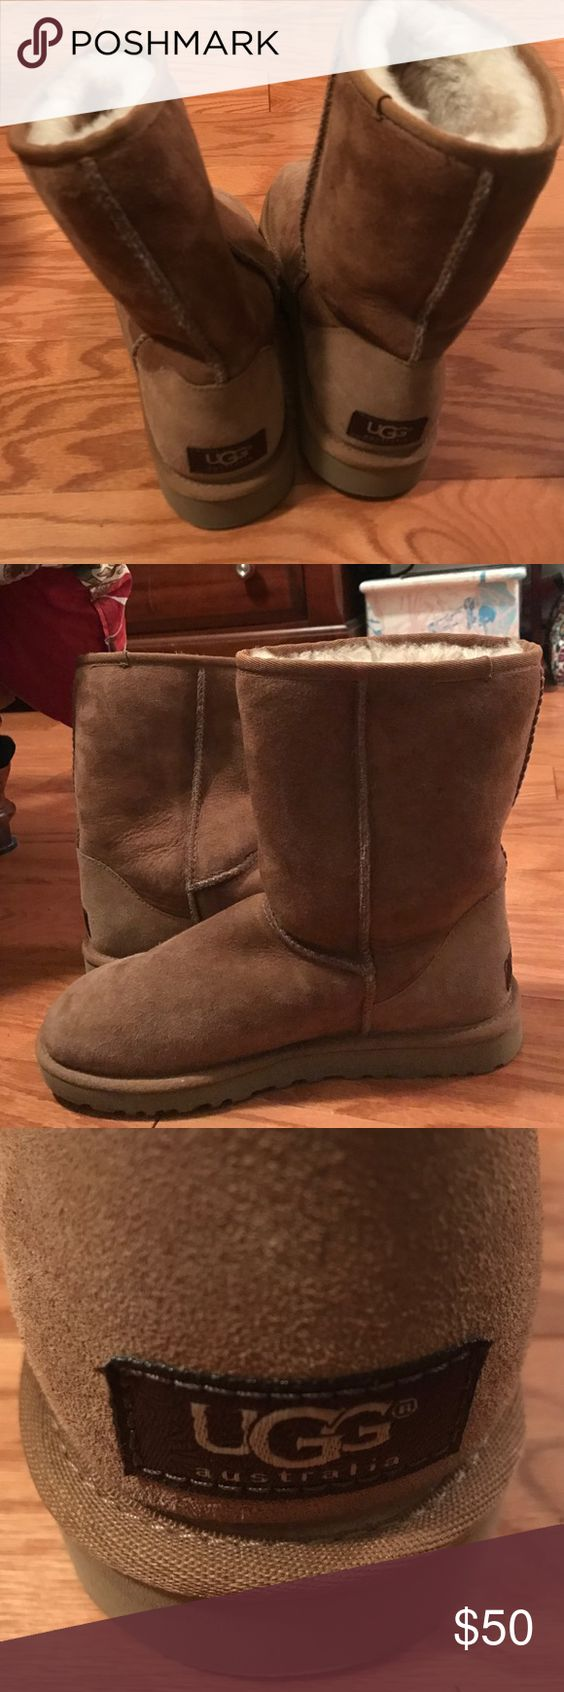 UGG boots Barely worn and in great condition UGG Shoes Winter & Rain Boots